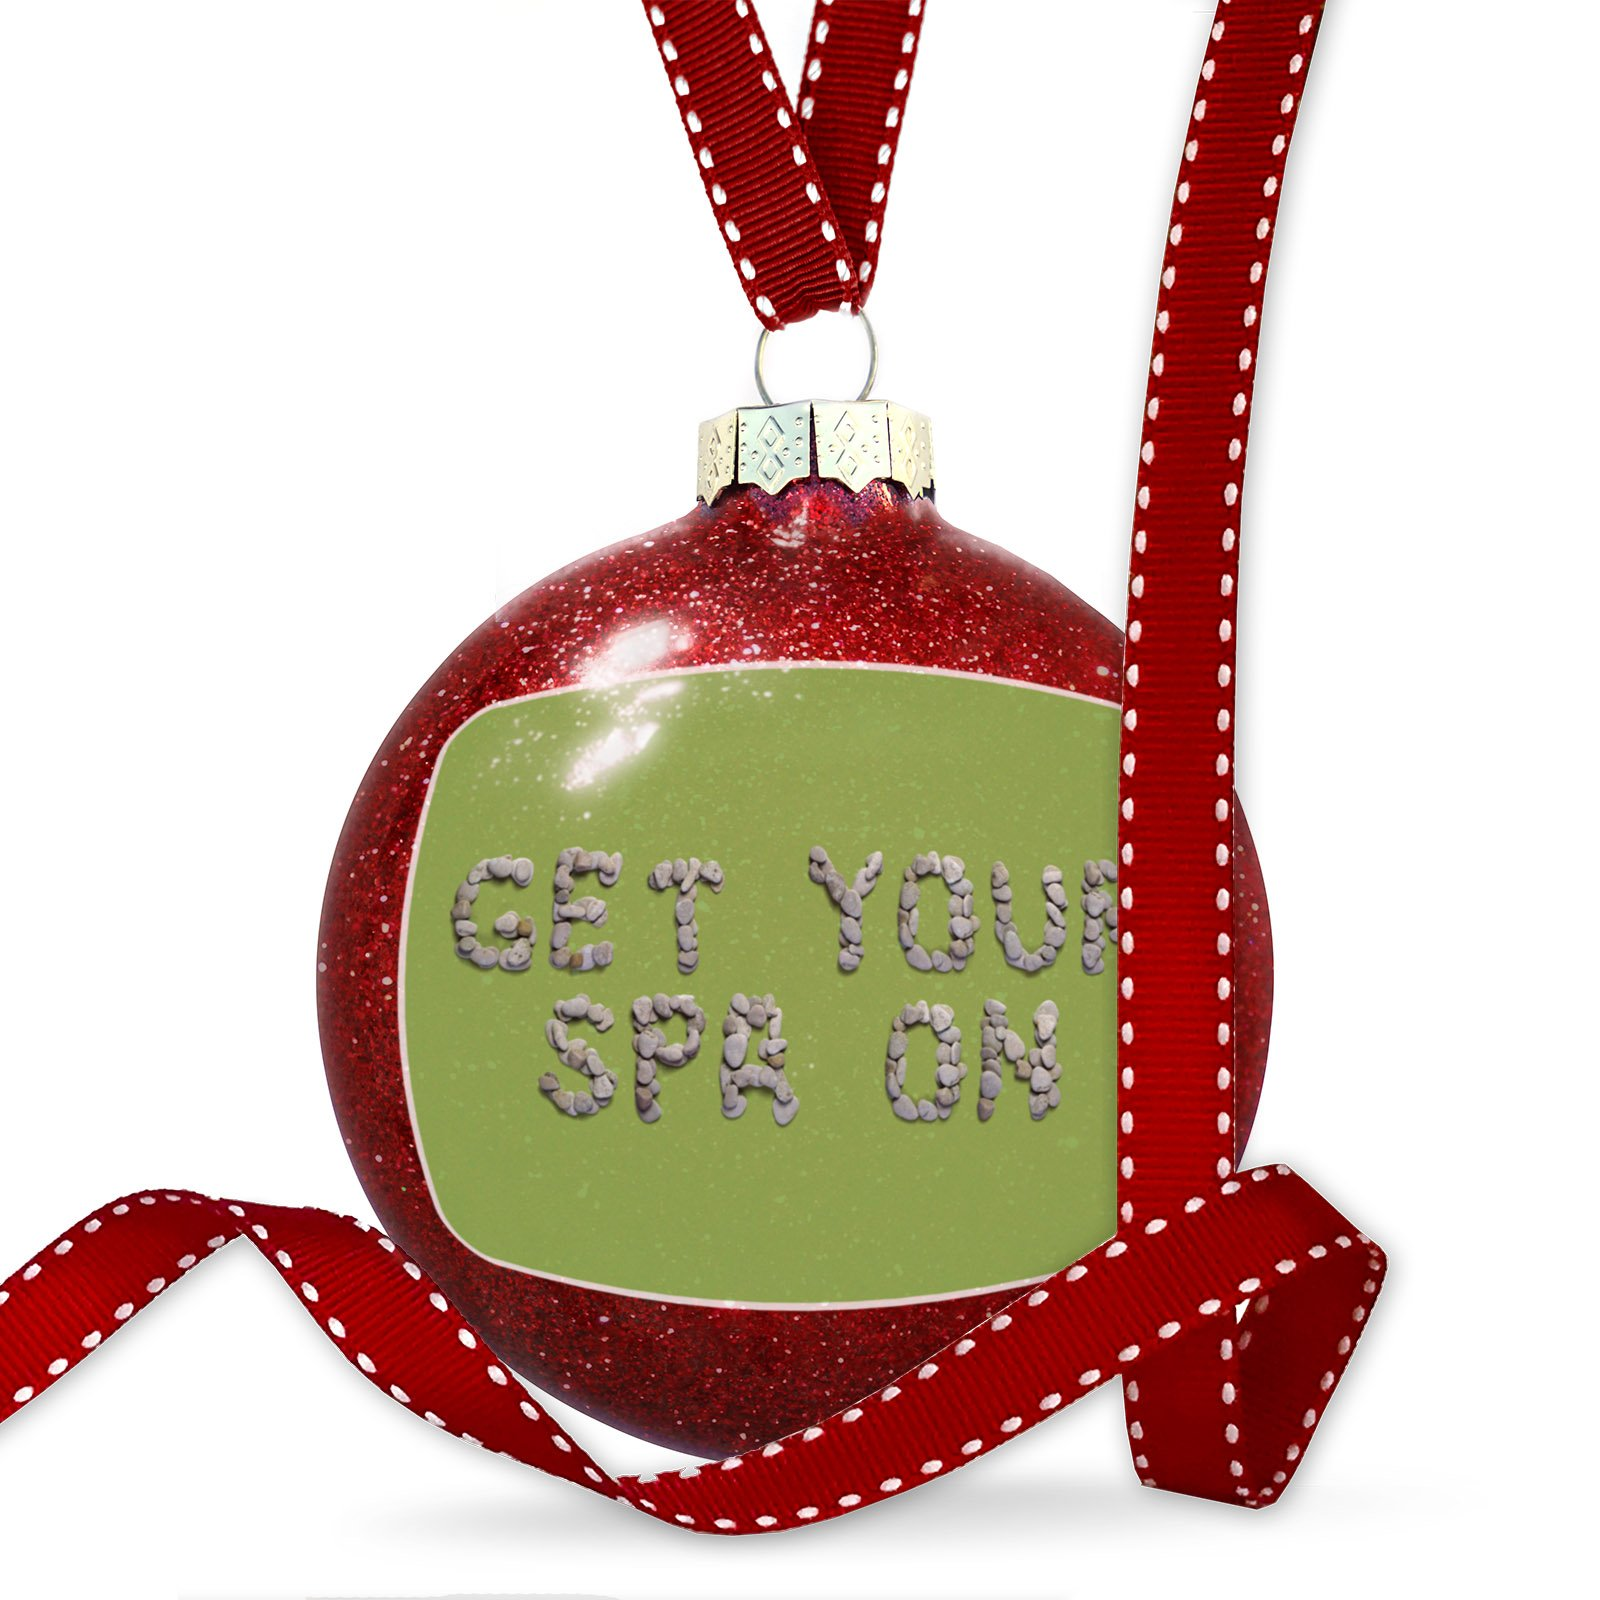 Christmas Decoration Get Your Spa On Spa Stones Rocks Ornament